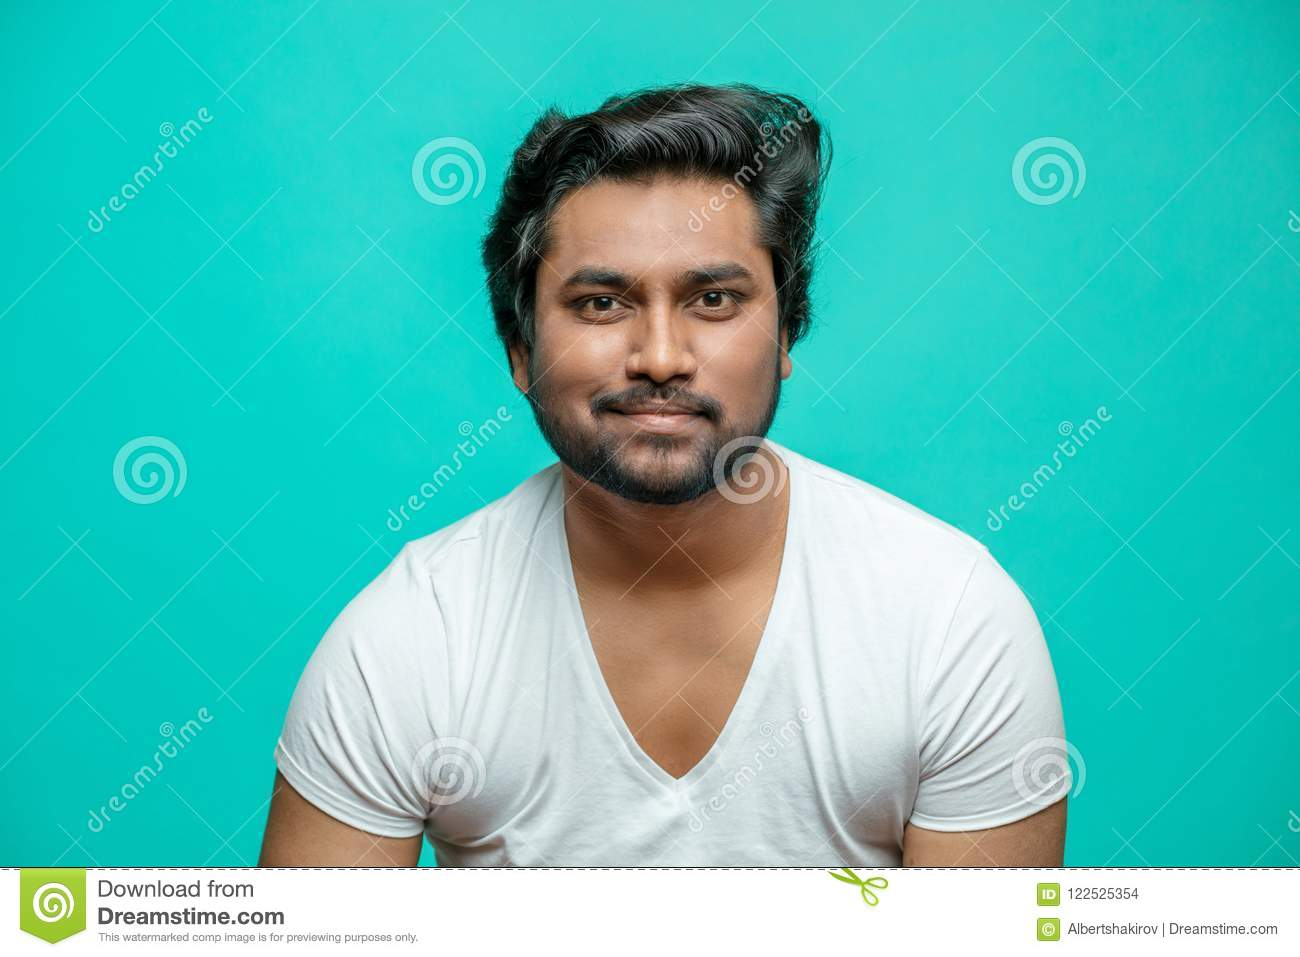 Smiling bearded brutal Indian guy looking at the camera